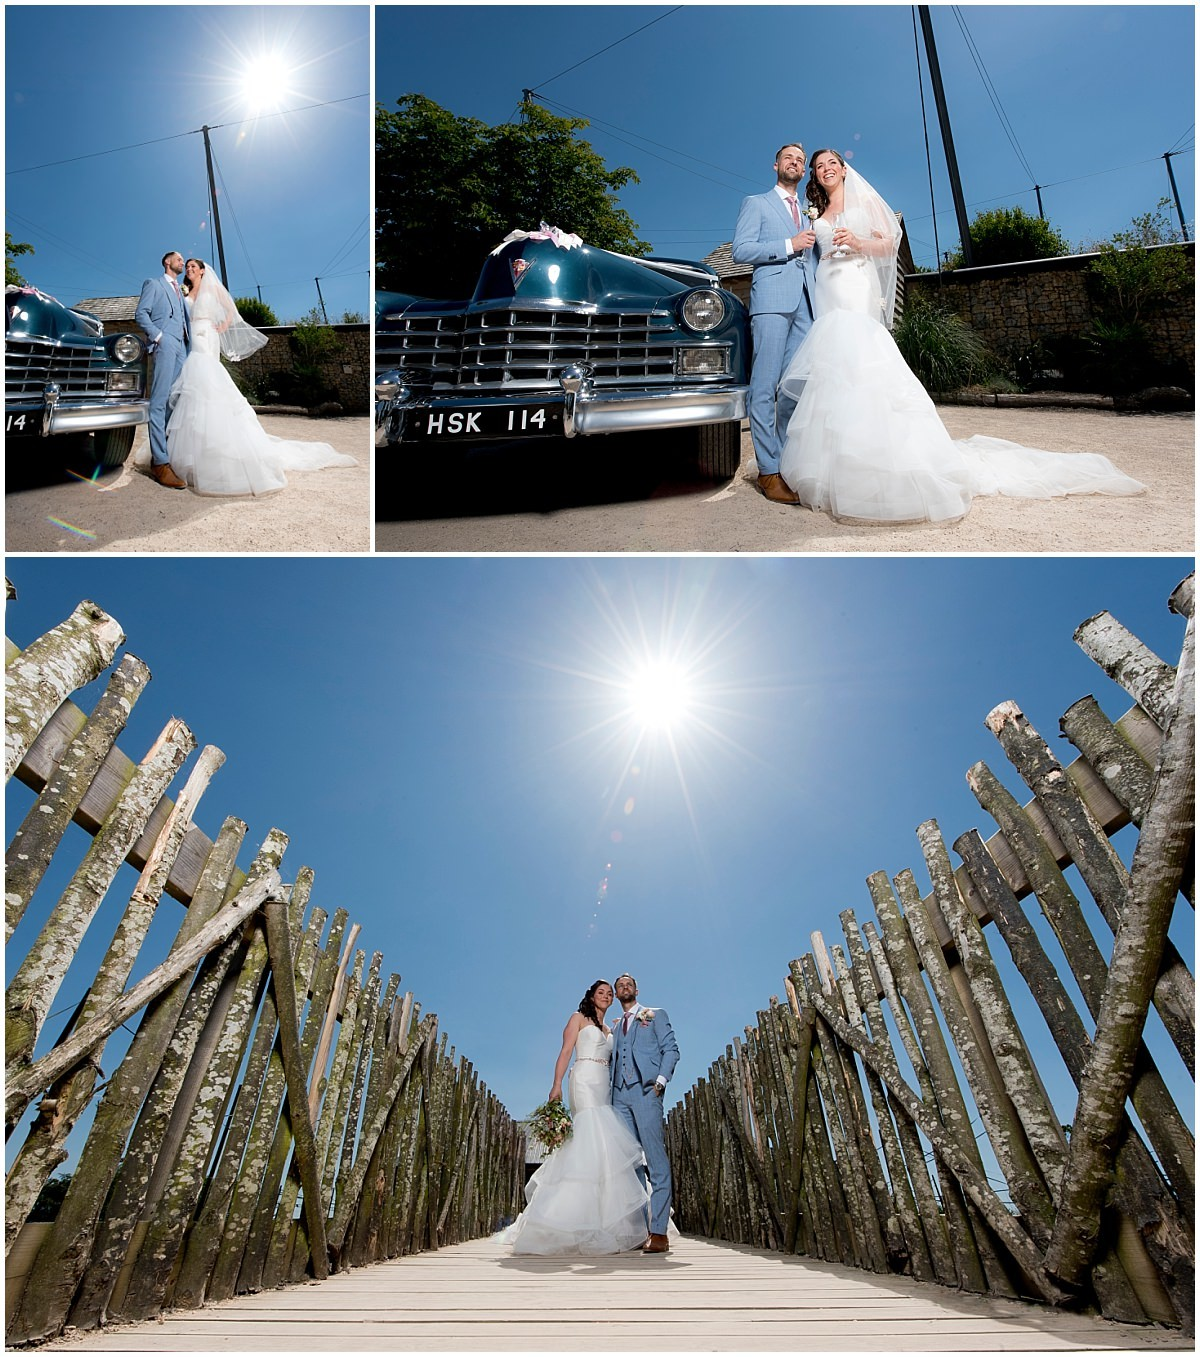 Bride and Groom at Twycross Zoo